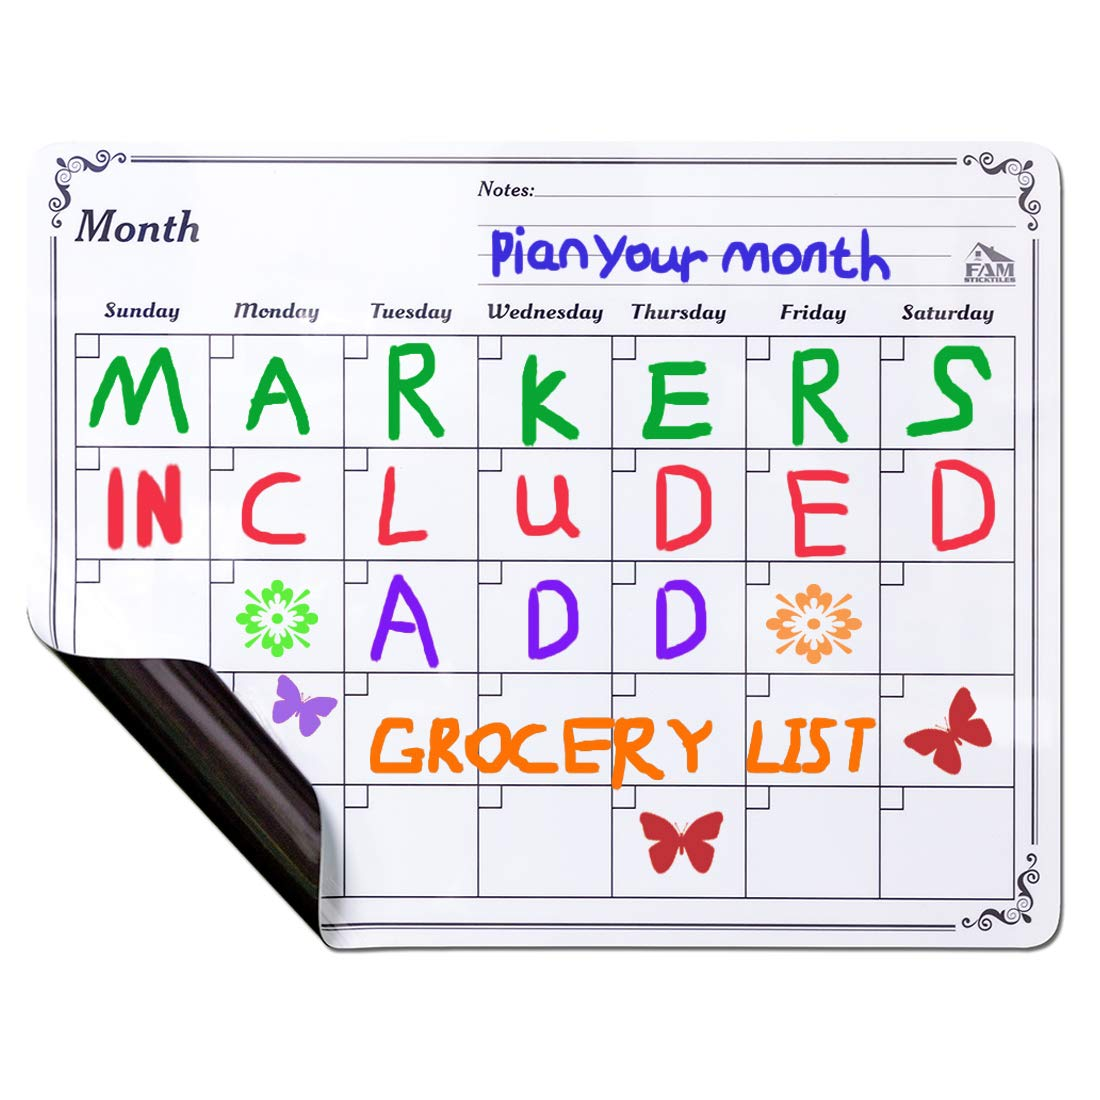 18X14 Monthly Planner Whiteboard Magnets Dry Erase Fridge Magnet Magnetic Calendar 2018 and 2019-Six Dry Erase Markers-A Grocery List for Post-it Notes and a Schedule. FAM STICKTILES